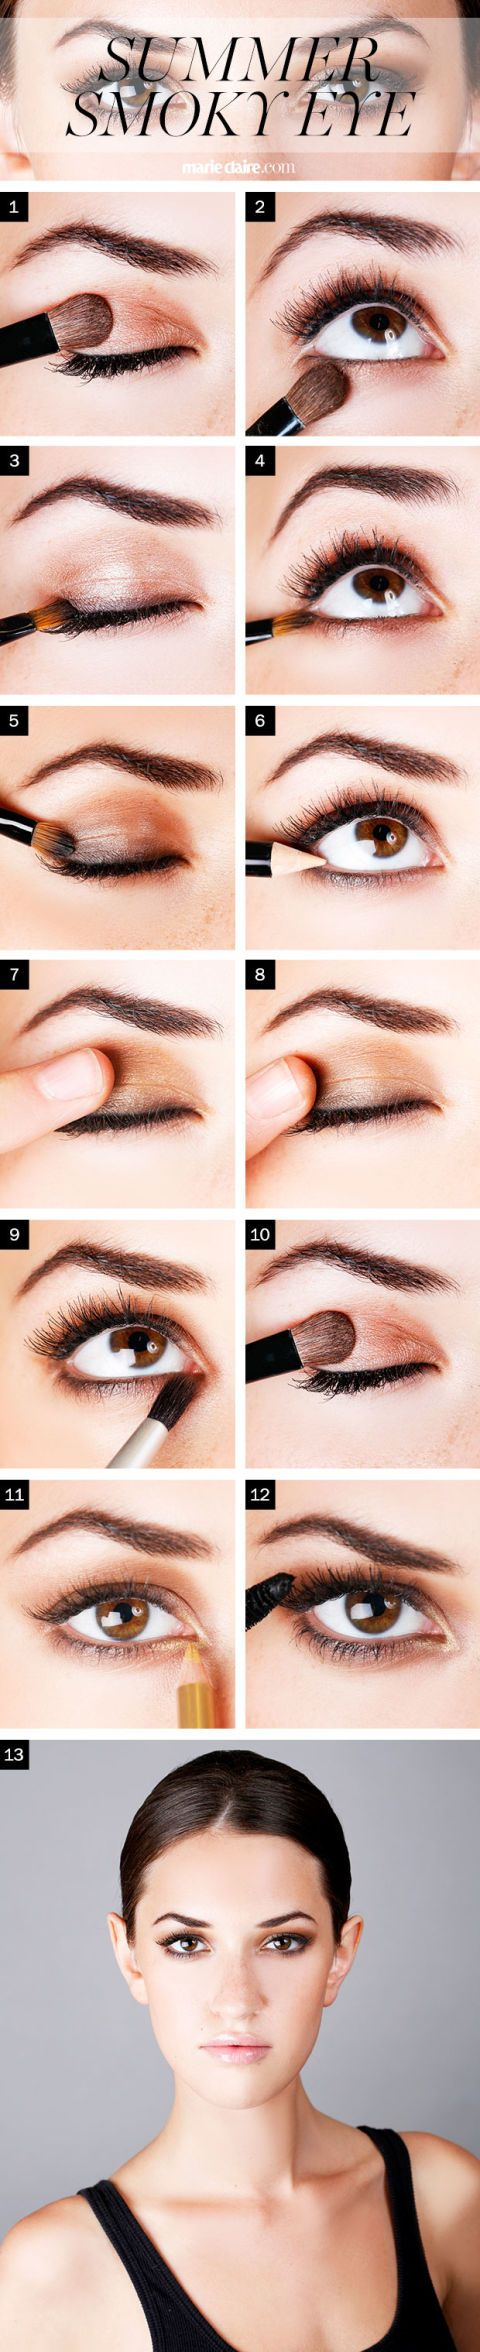 How To Get a Bronze Summer Smoky Eye - Step By Step Metallic Smoky Eye